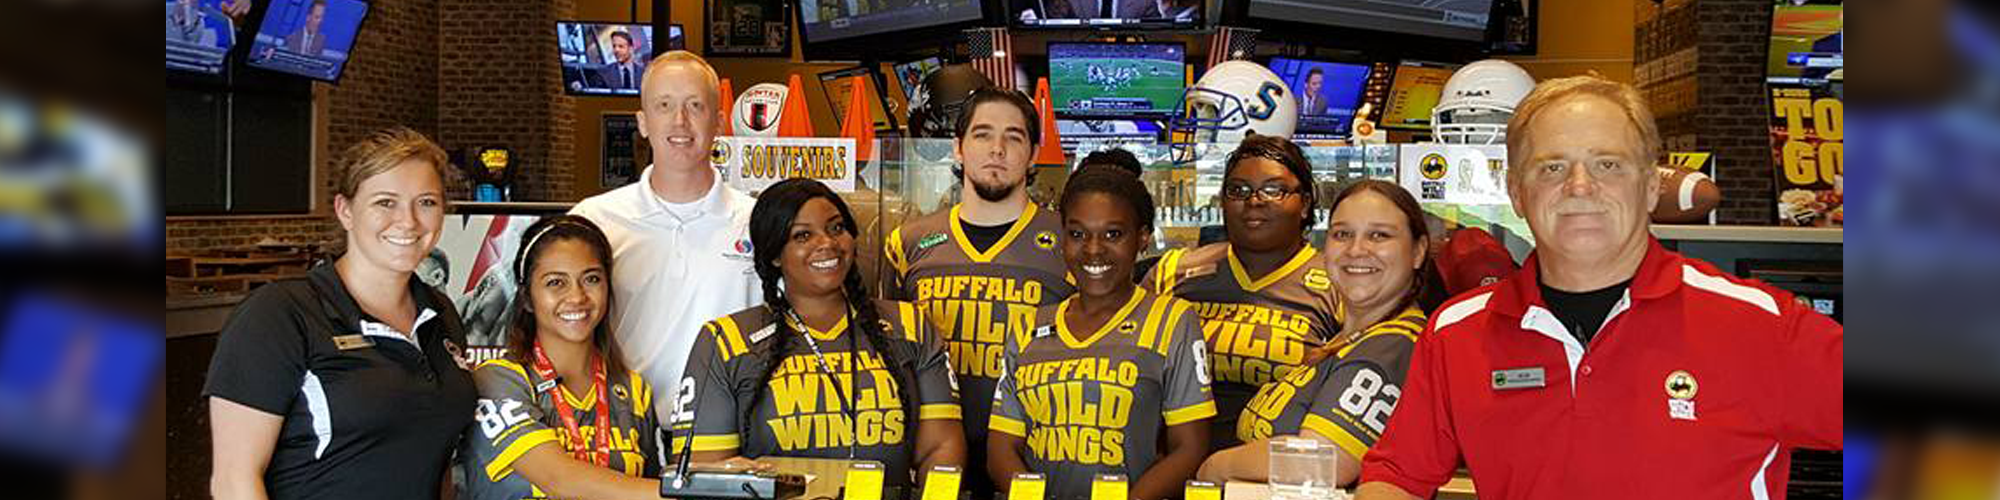 Timothy Montjoy with Buffalo Wild Wings